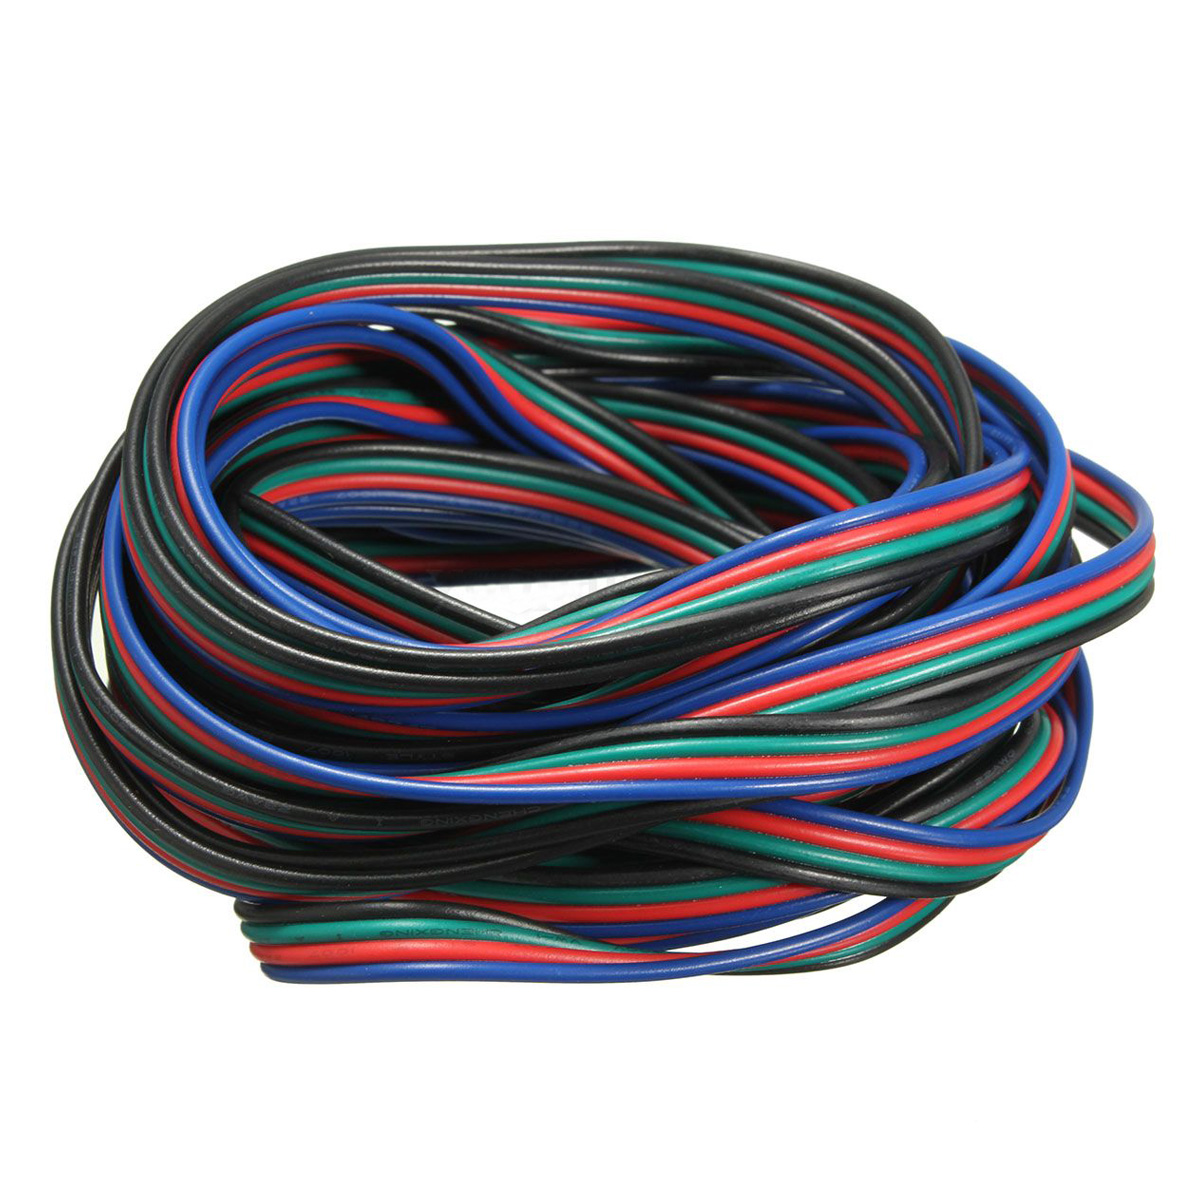 High quality 4 Pin Wire Extension Connector Cable Cord For LED RGB Strip 3528 5050 Connector Colourful 20M